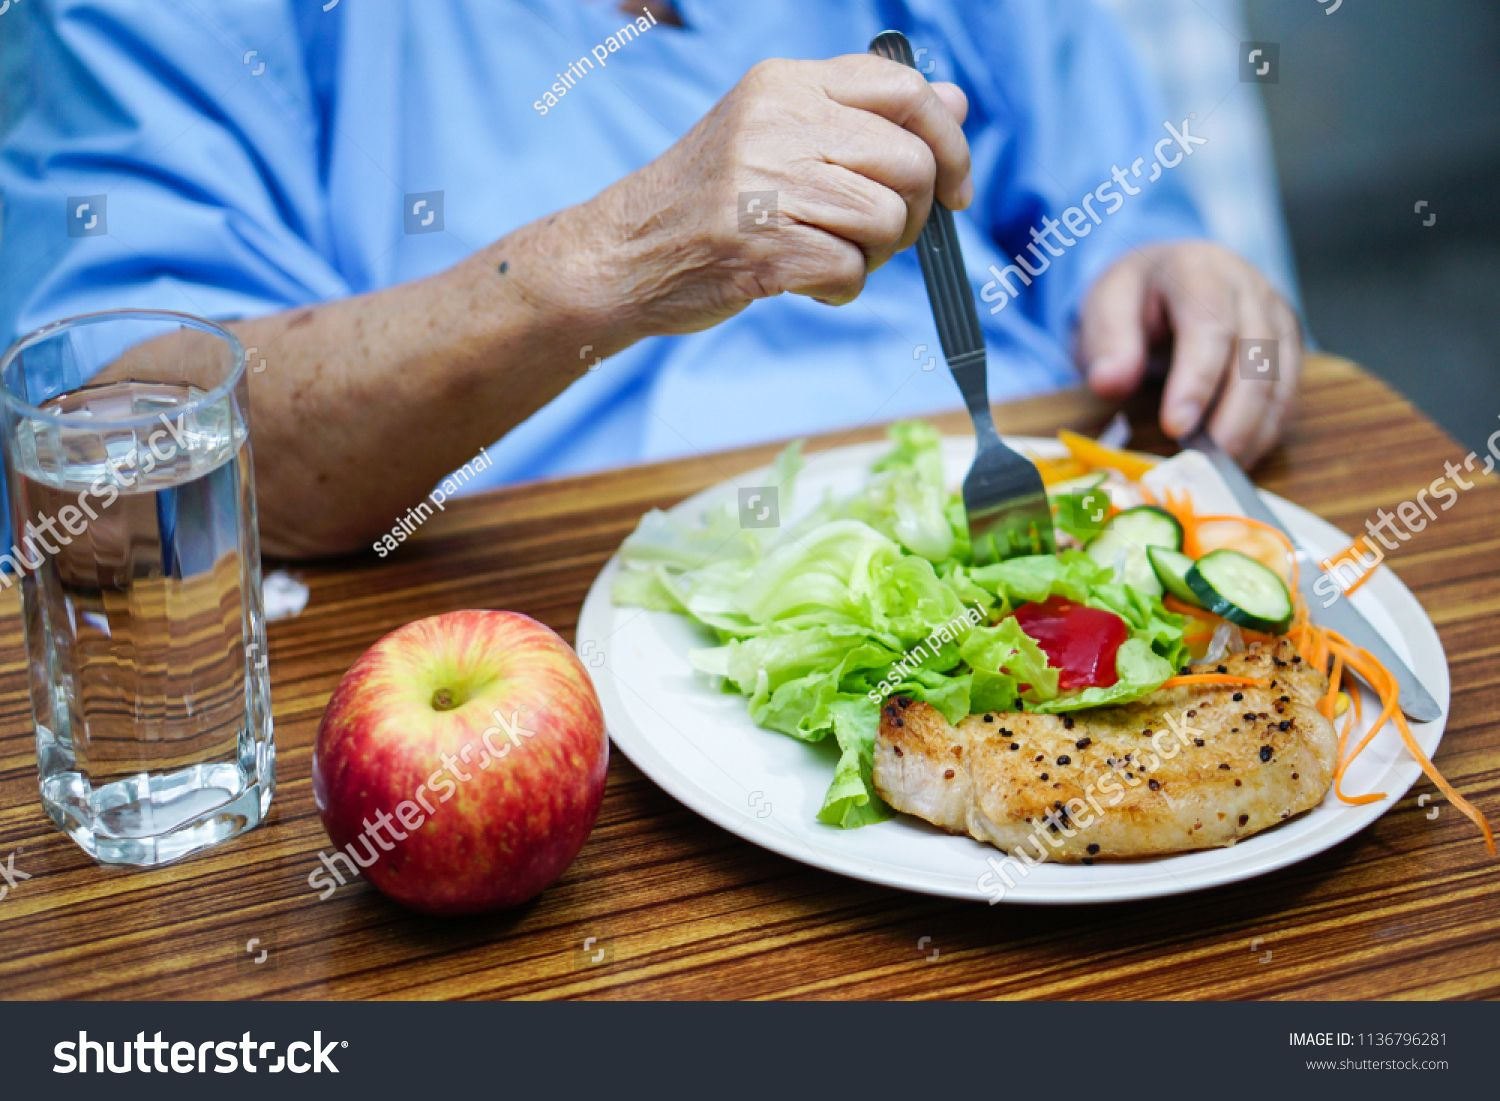 Asian Senior Or Elderly Old Lady Woman Patient Eating Breakfast